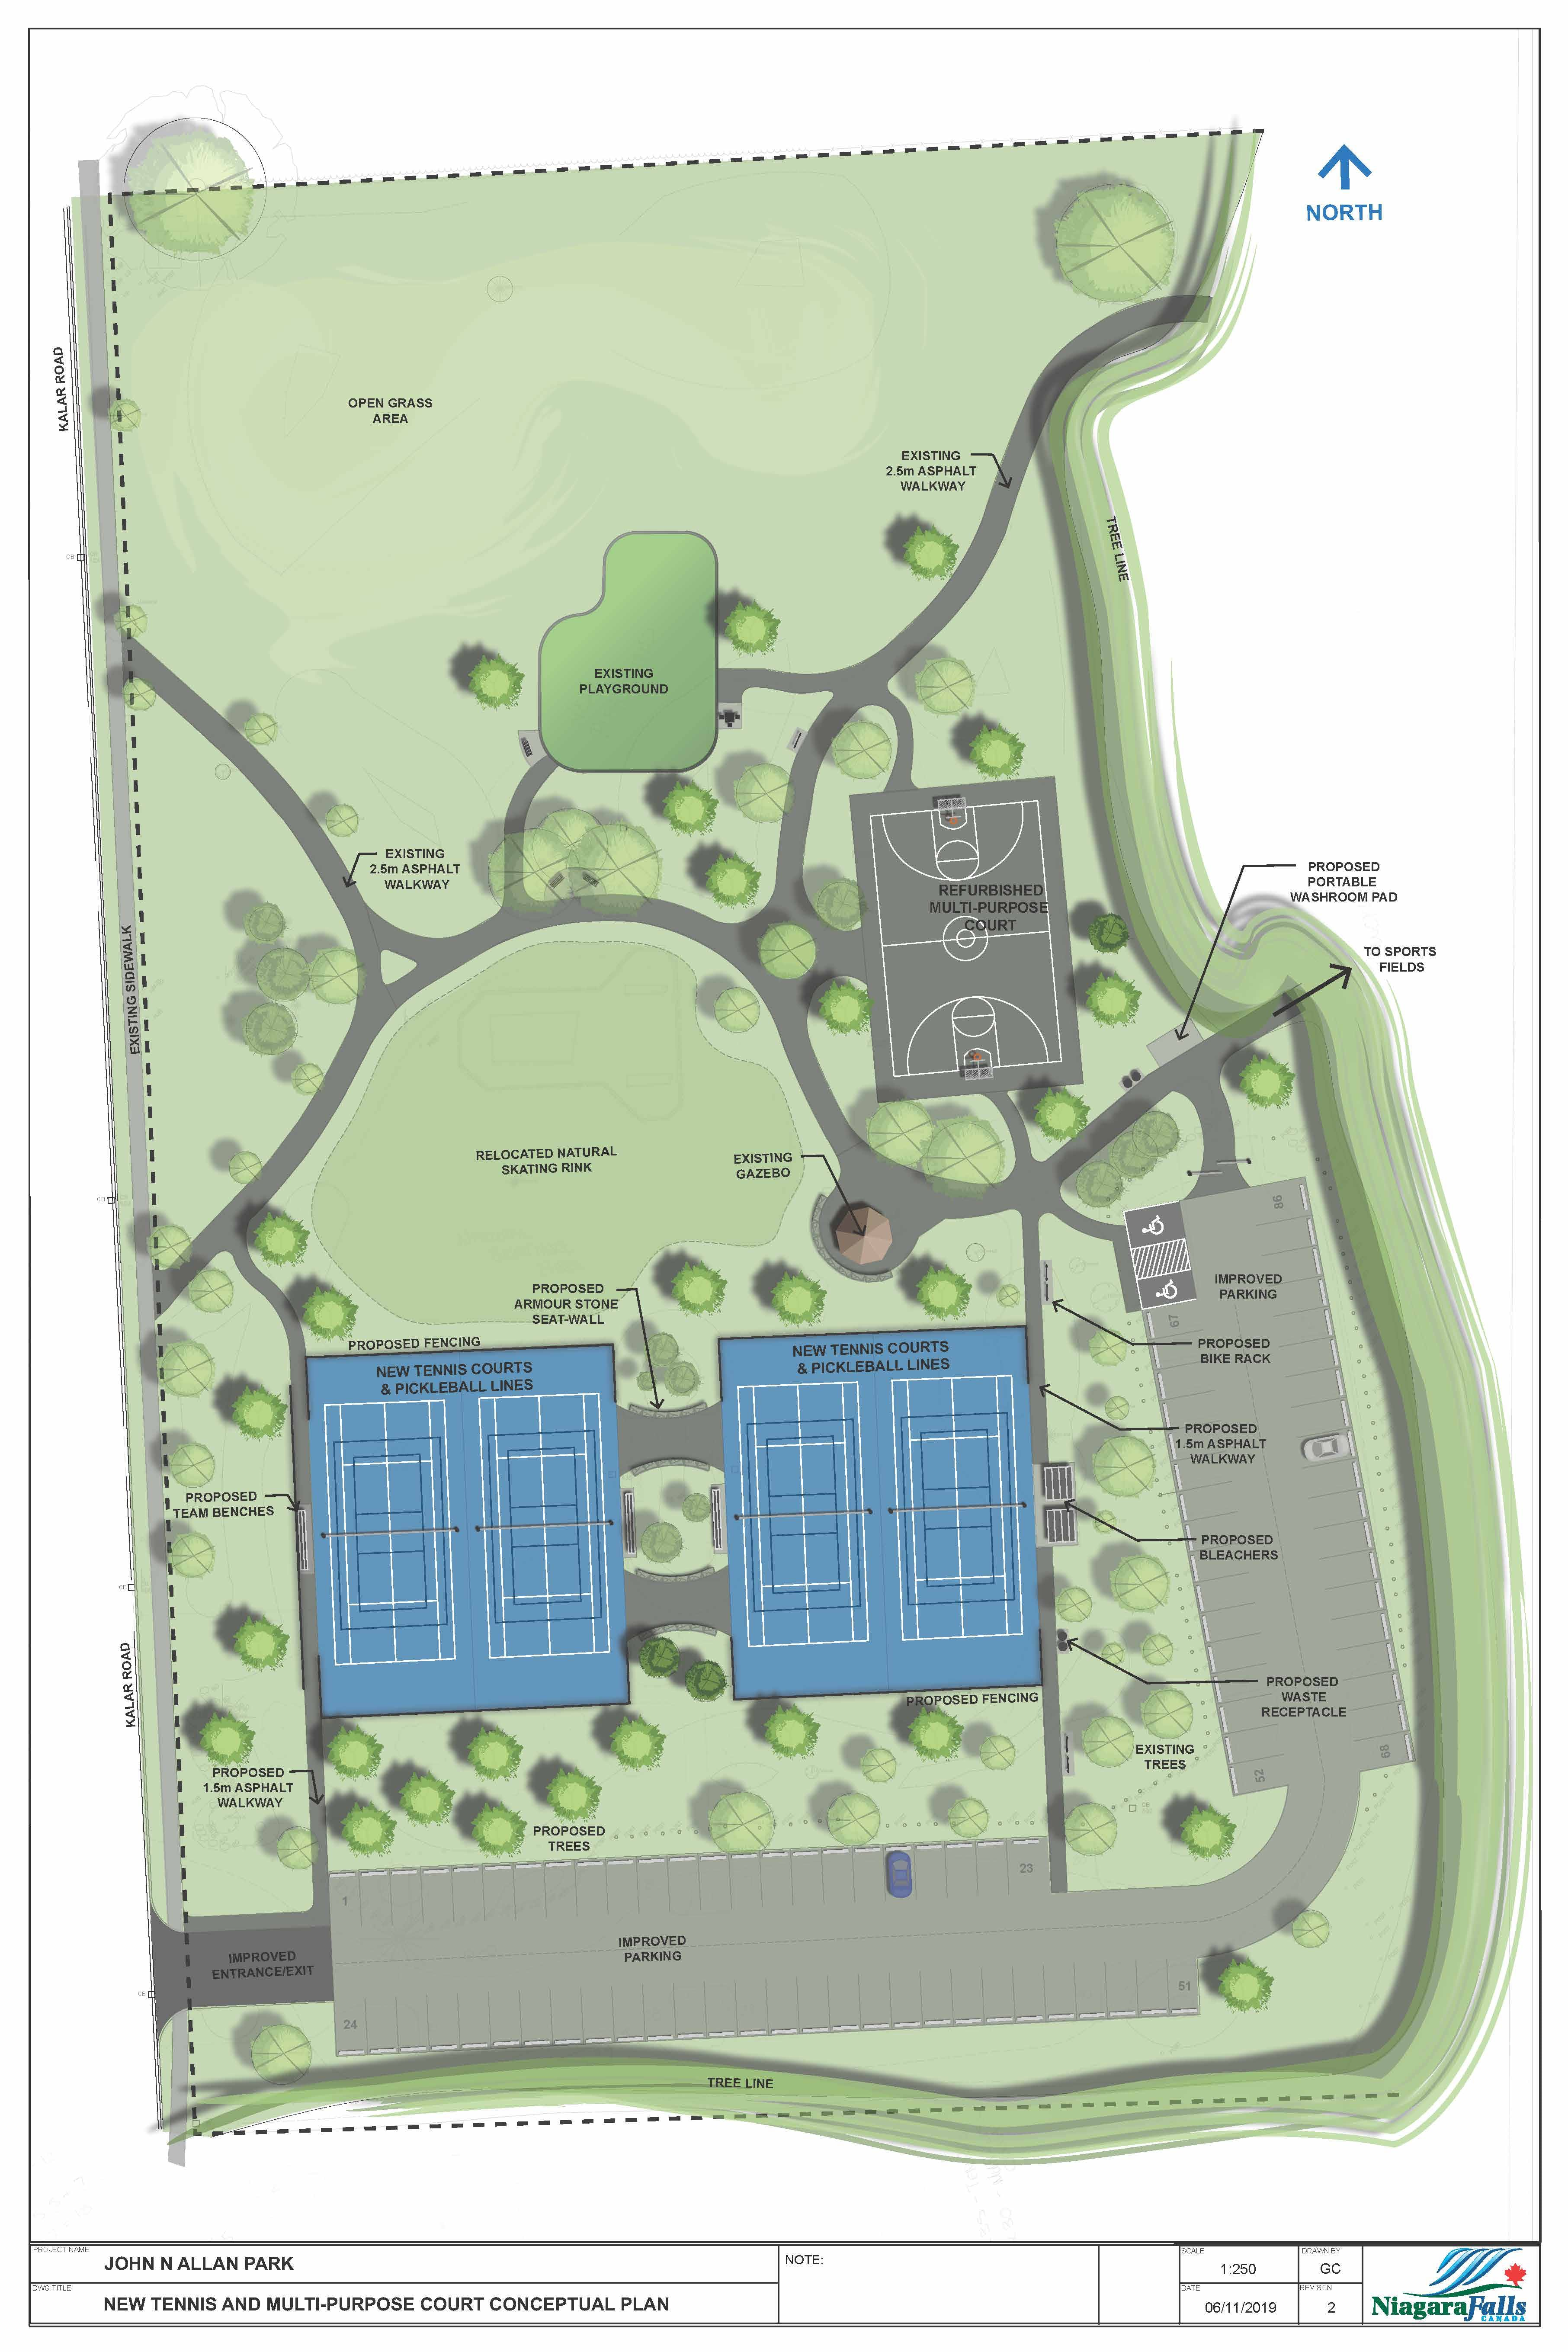 New tennis and multi-purpose court conceptual plan of John N Allan park.